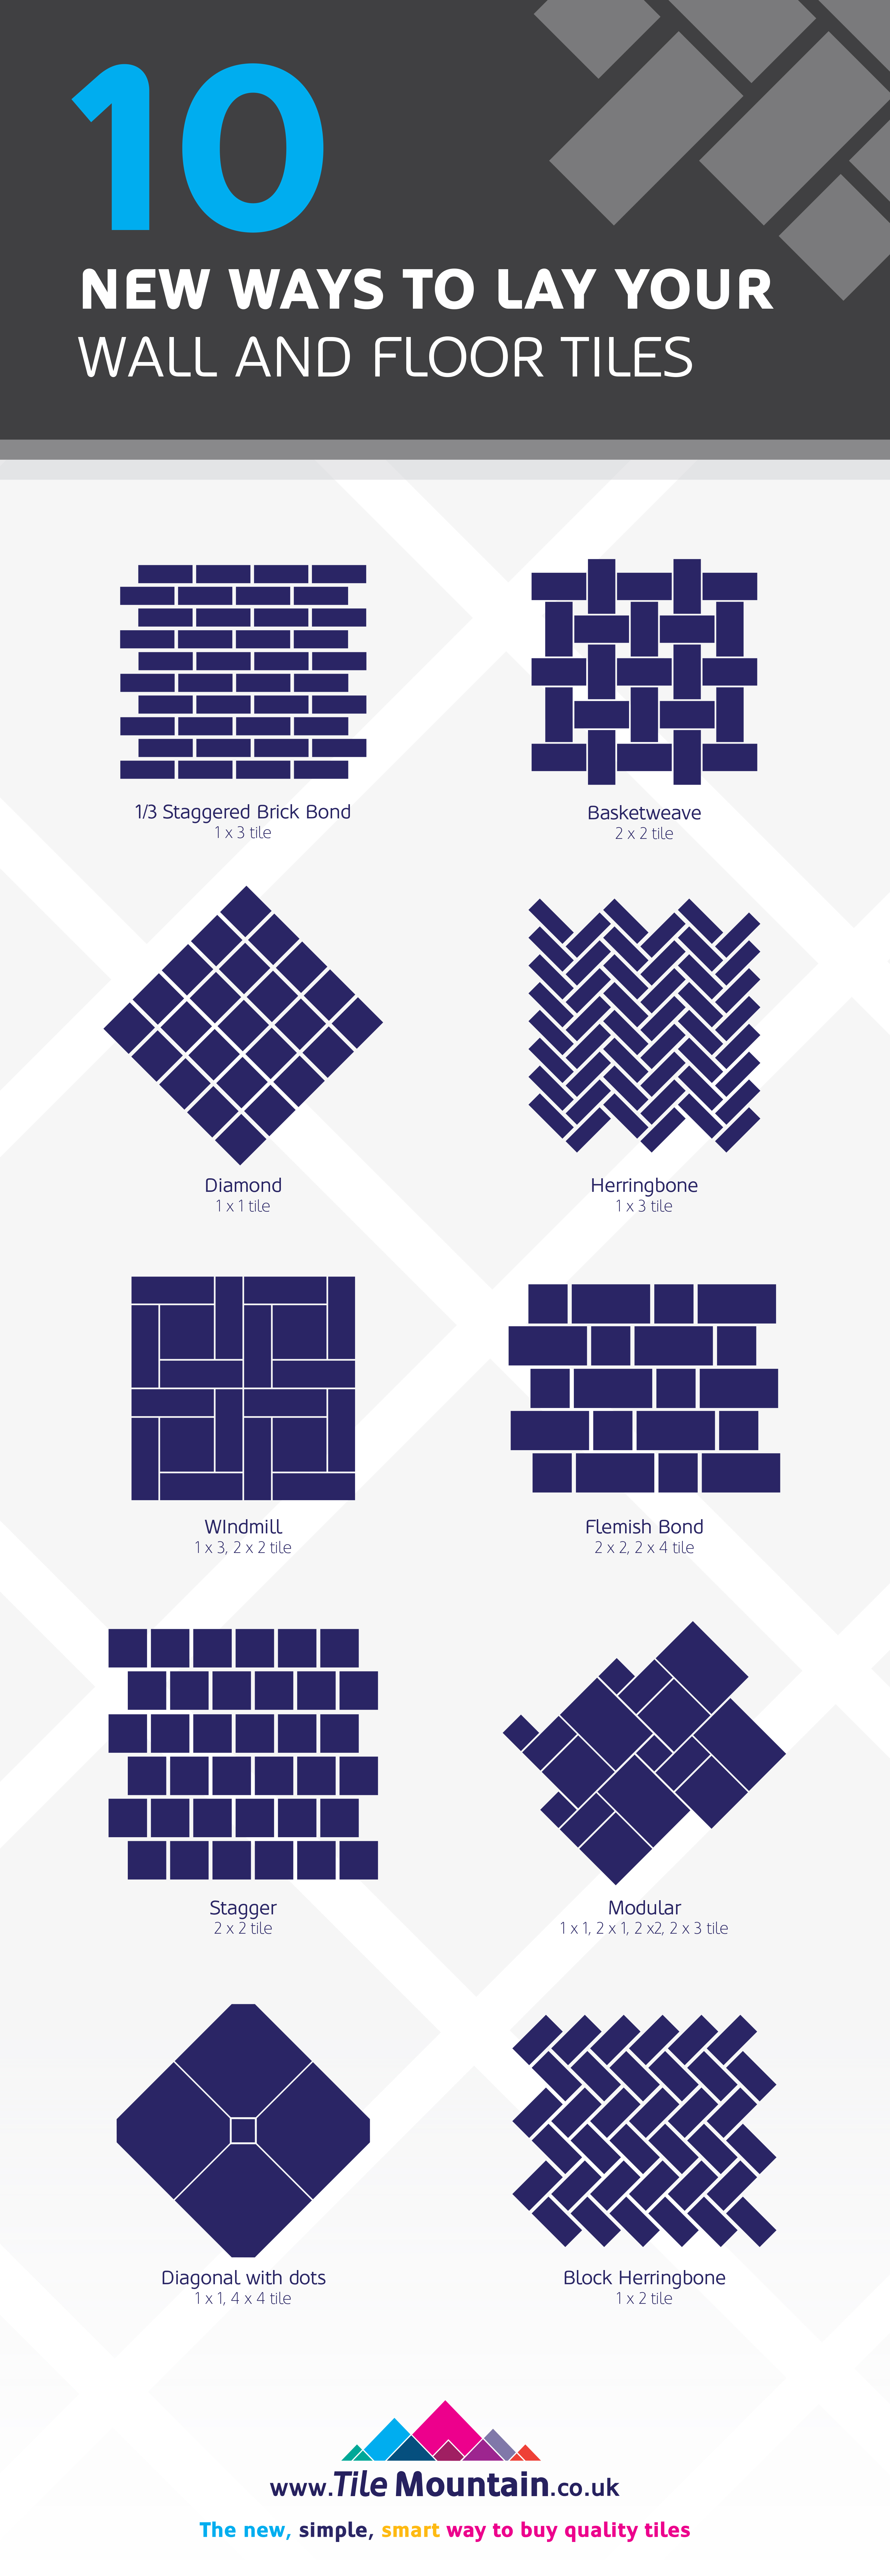 10 New Ways To Lay Wall Tiles And Floor Tile Mountain